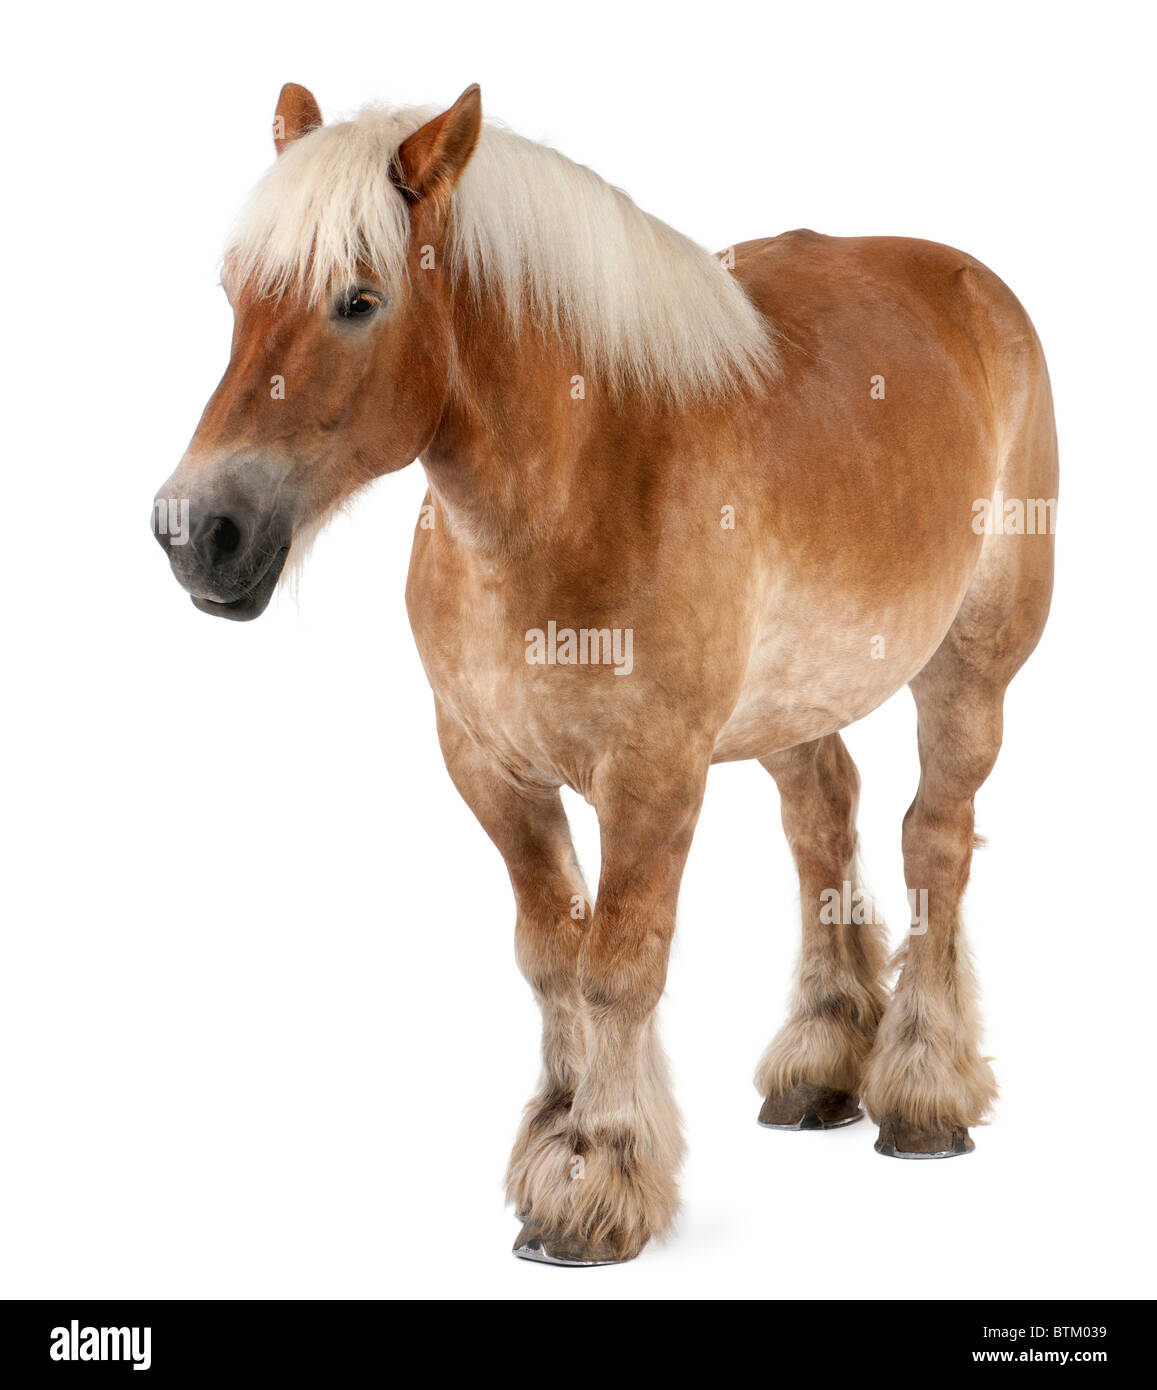 Belgian horse, Belgian Heavy Horse, Brabancon, a draft horse breed, 10 years old, standing in front of white background - Stock Image